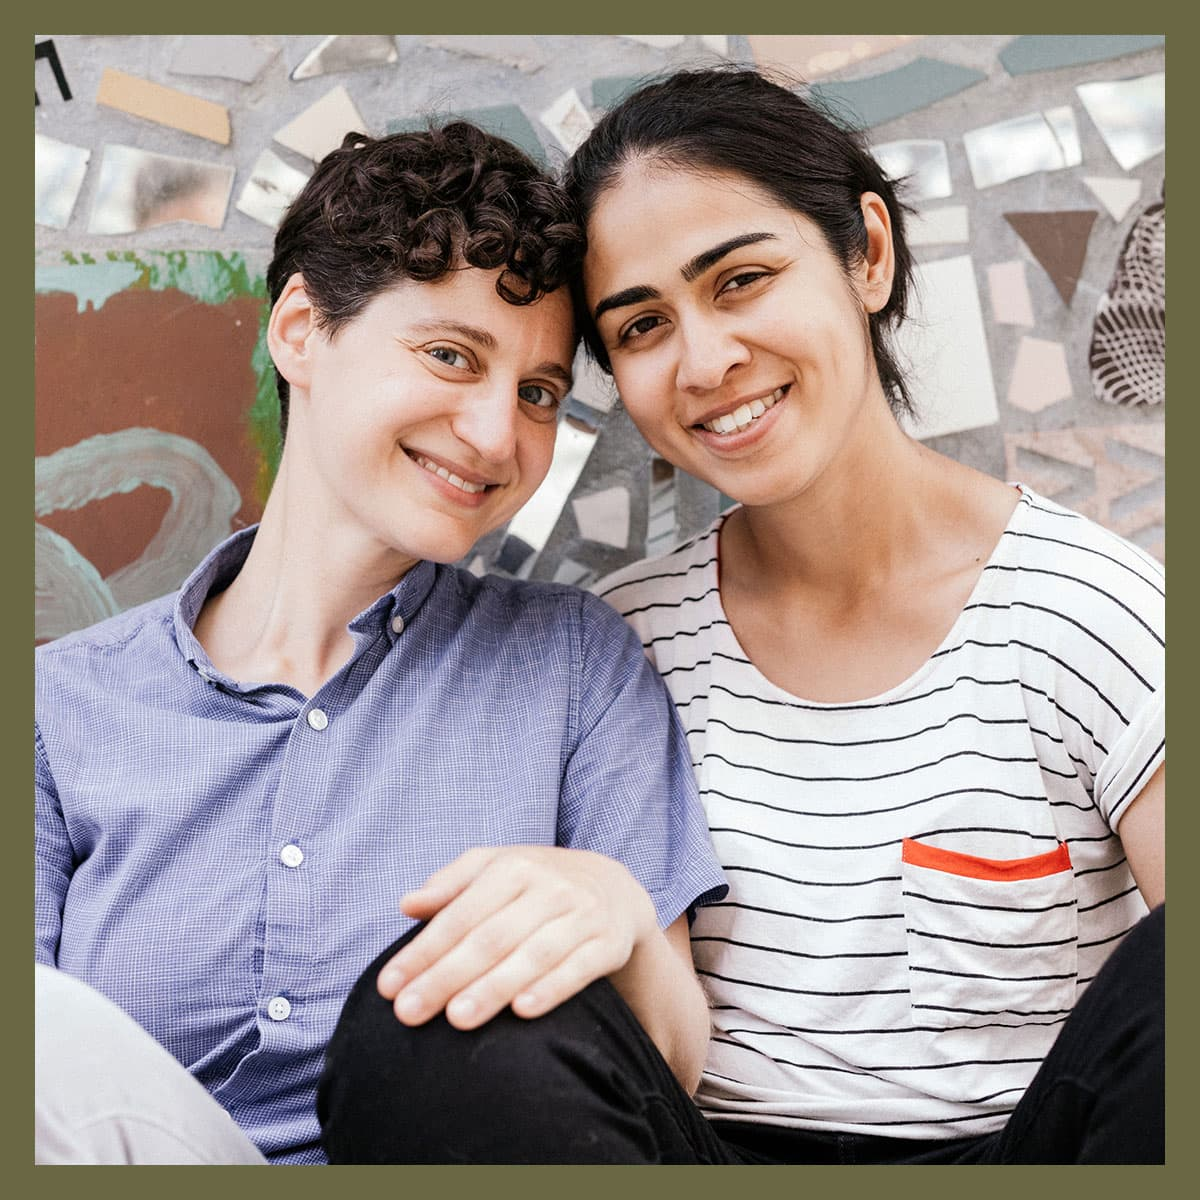 Beth and Neeta are Looking to Adopt a Baby